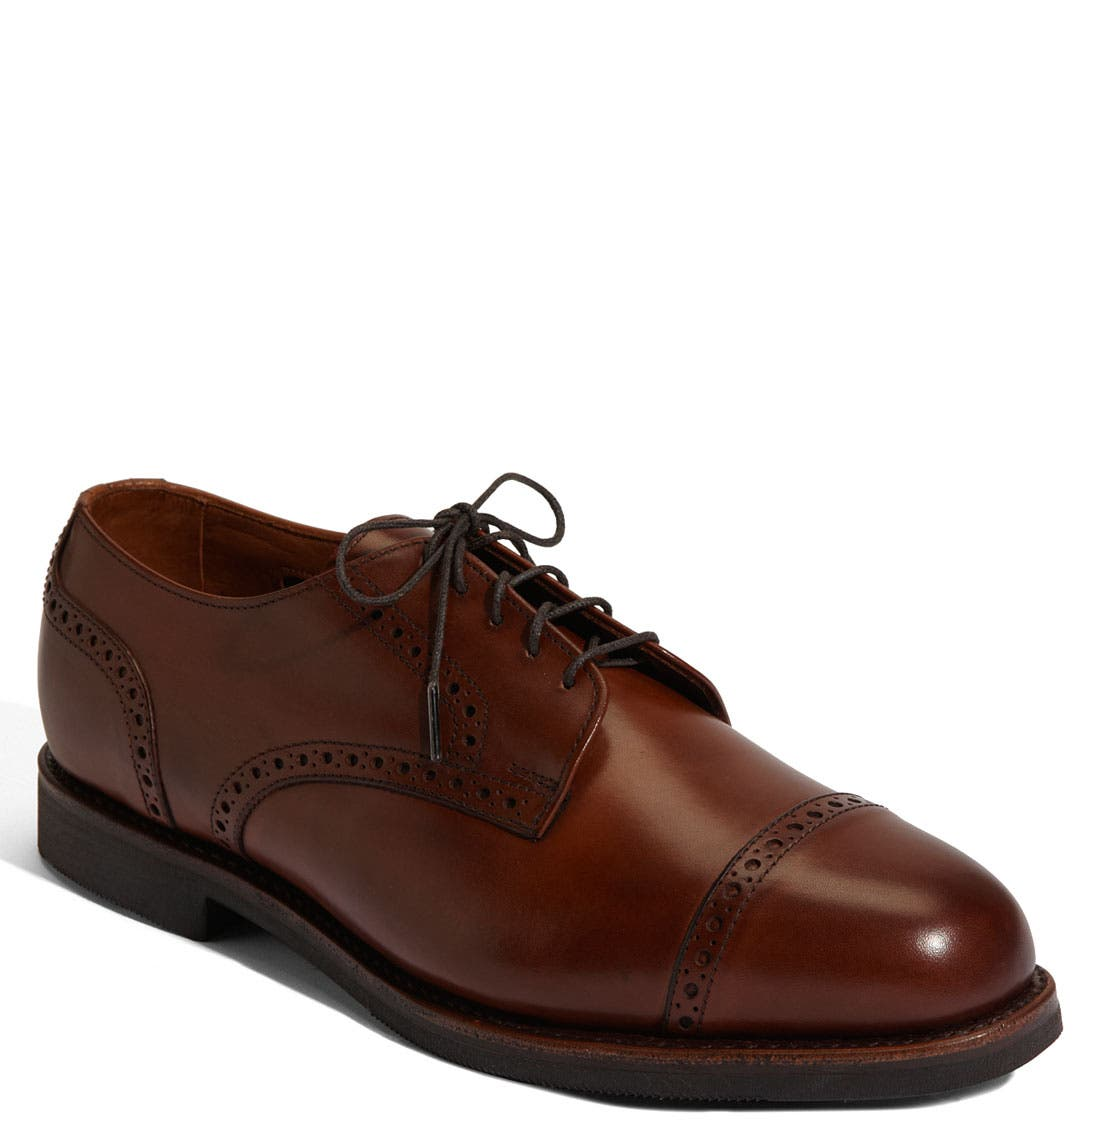 Main Image - Allen Edmonds Benton Cap Toe Oxford